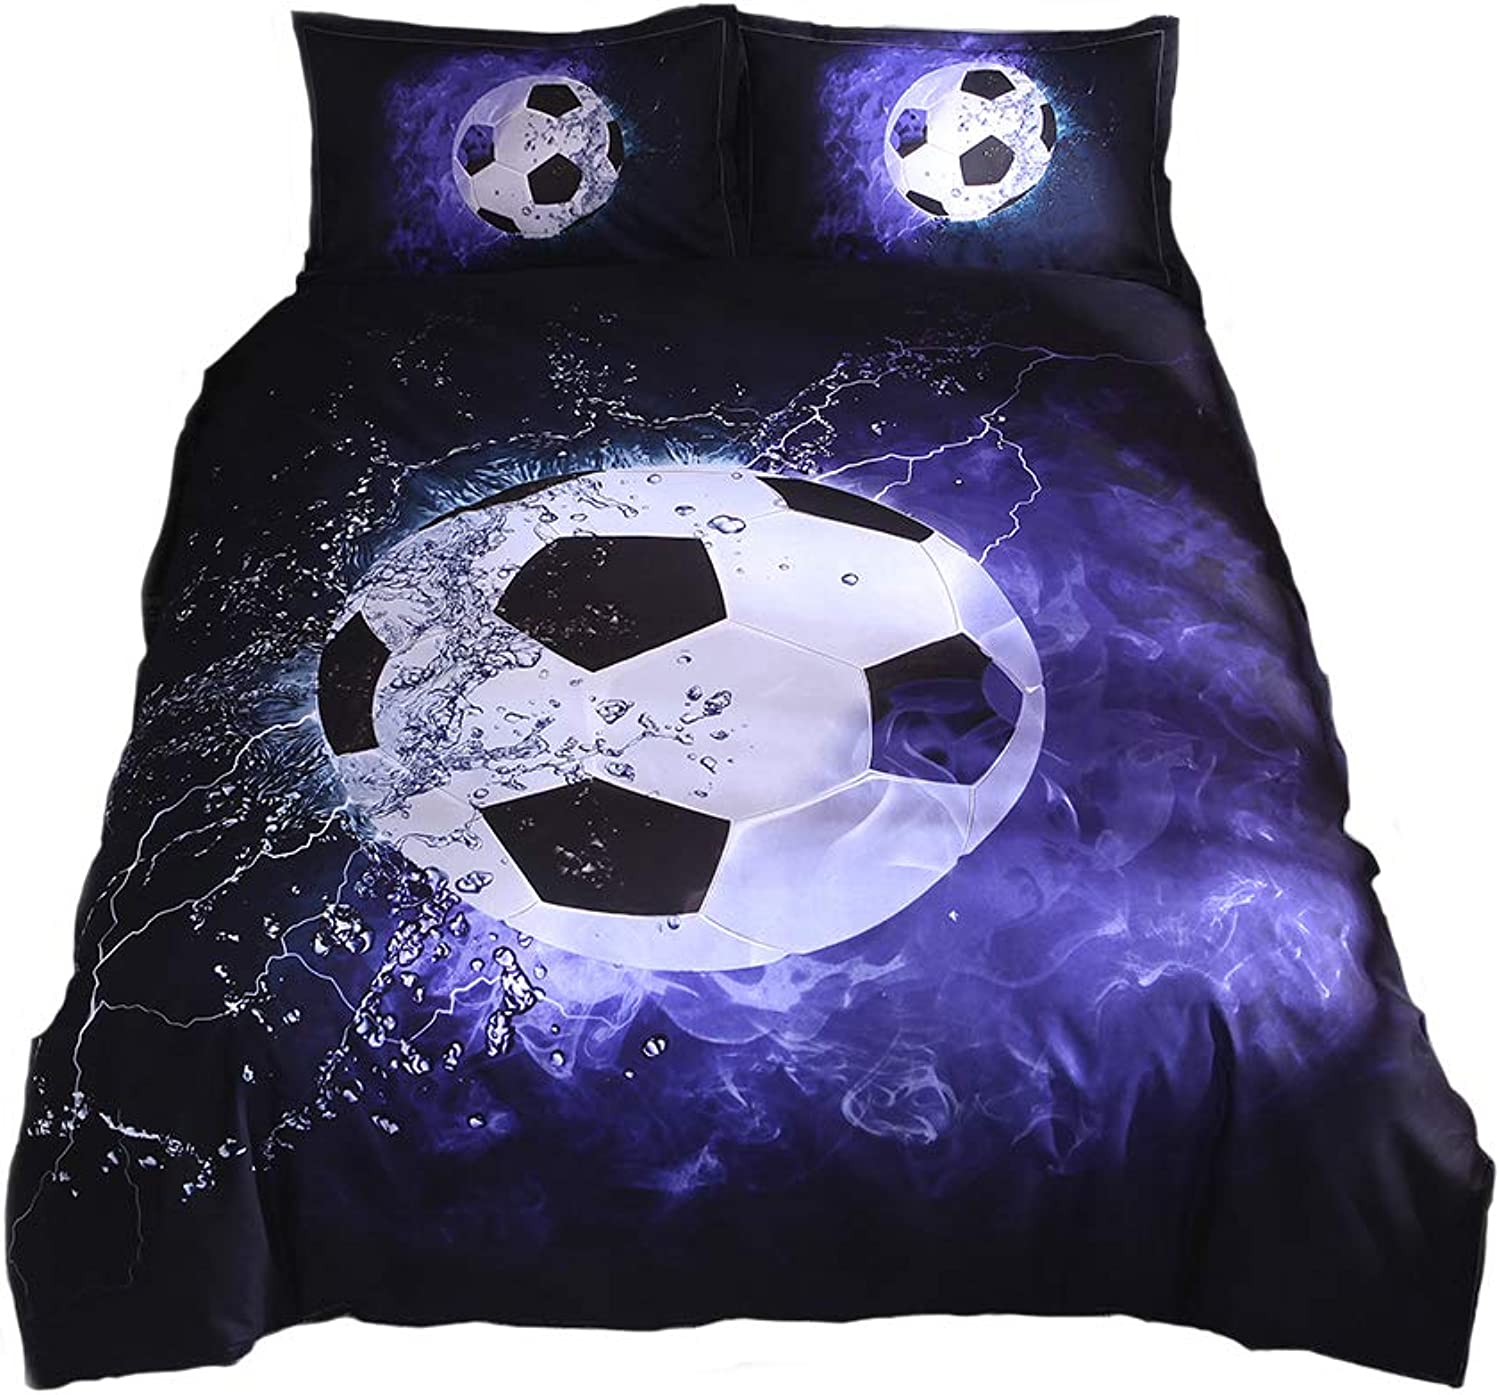 Lldaily 3D Sports Football Bedding Set for Teen Boys,Duvet Cover Sets with Pillowcases,Queen Size,3PCS,1 Duvet Cover+2 Pillow Shams,(No Comforter Quilt and Quvet)